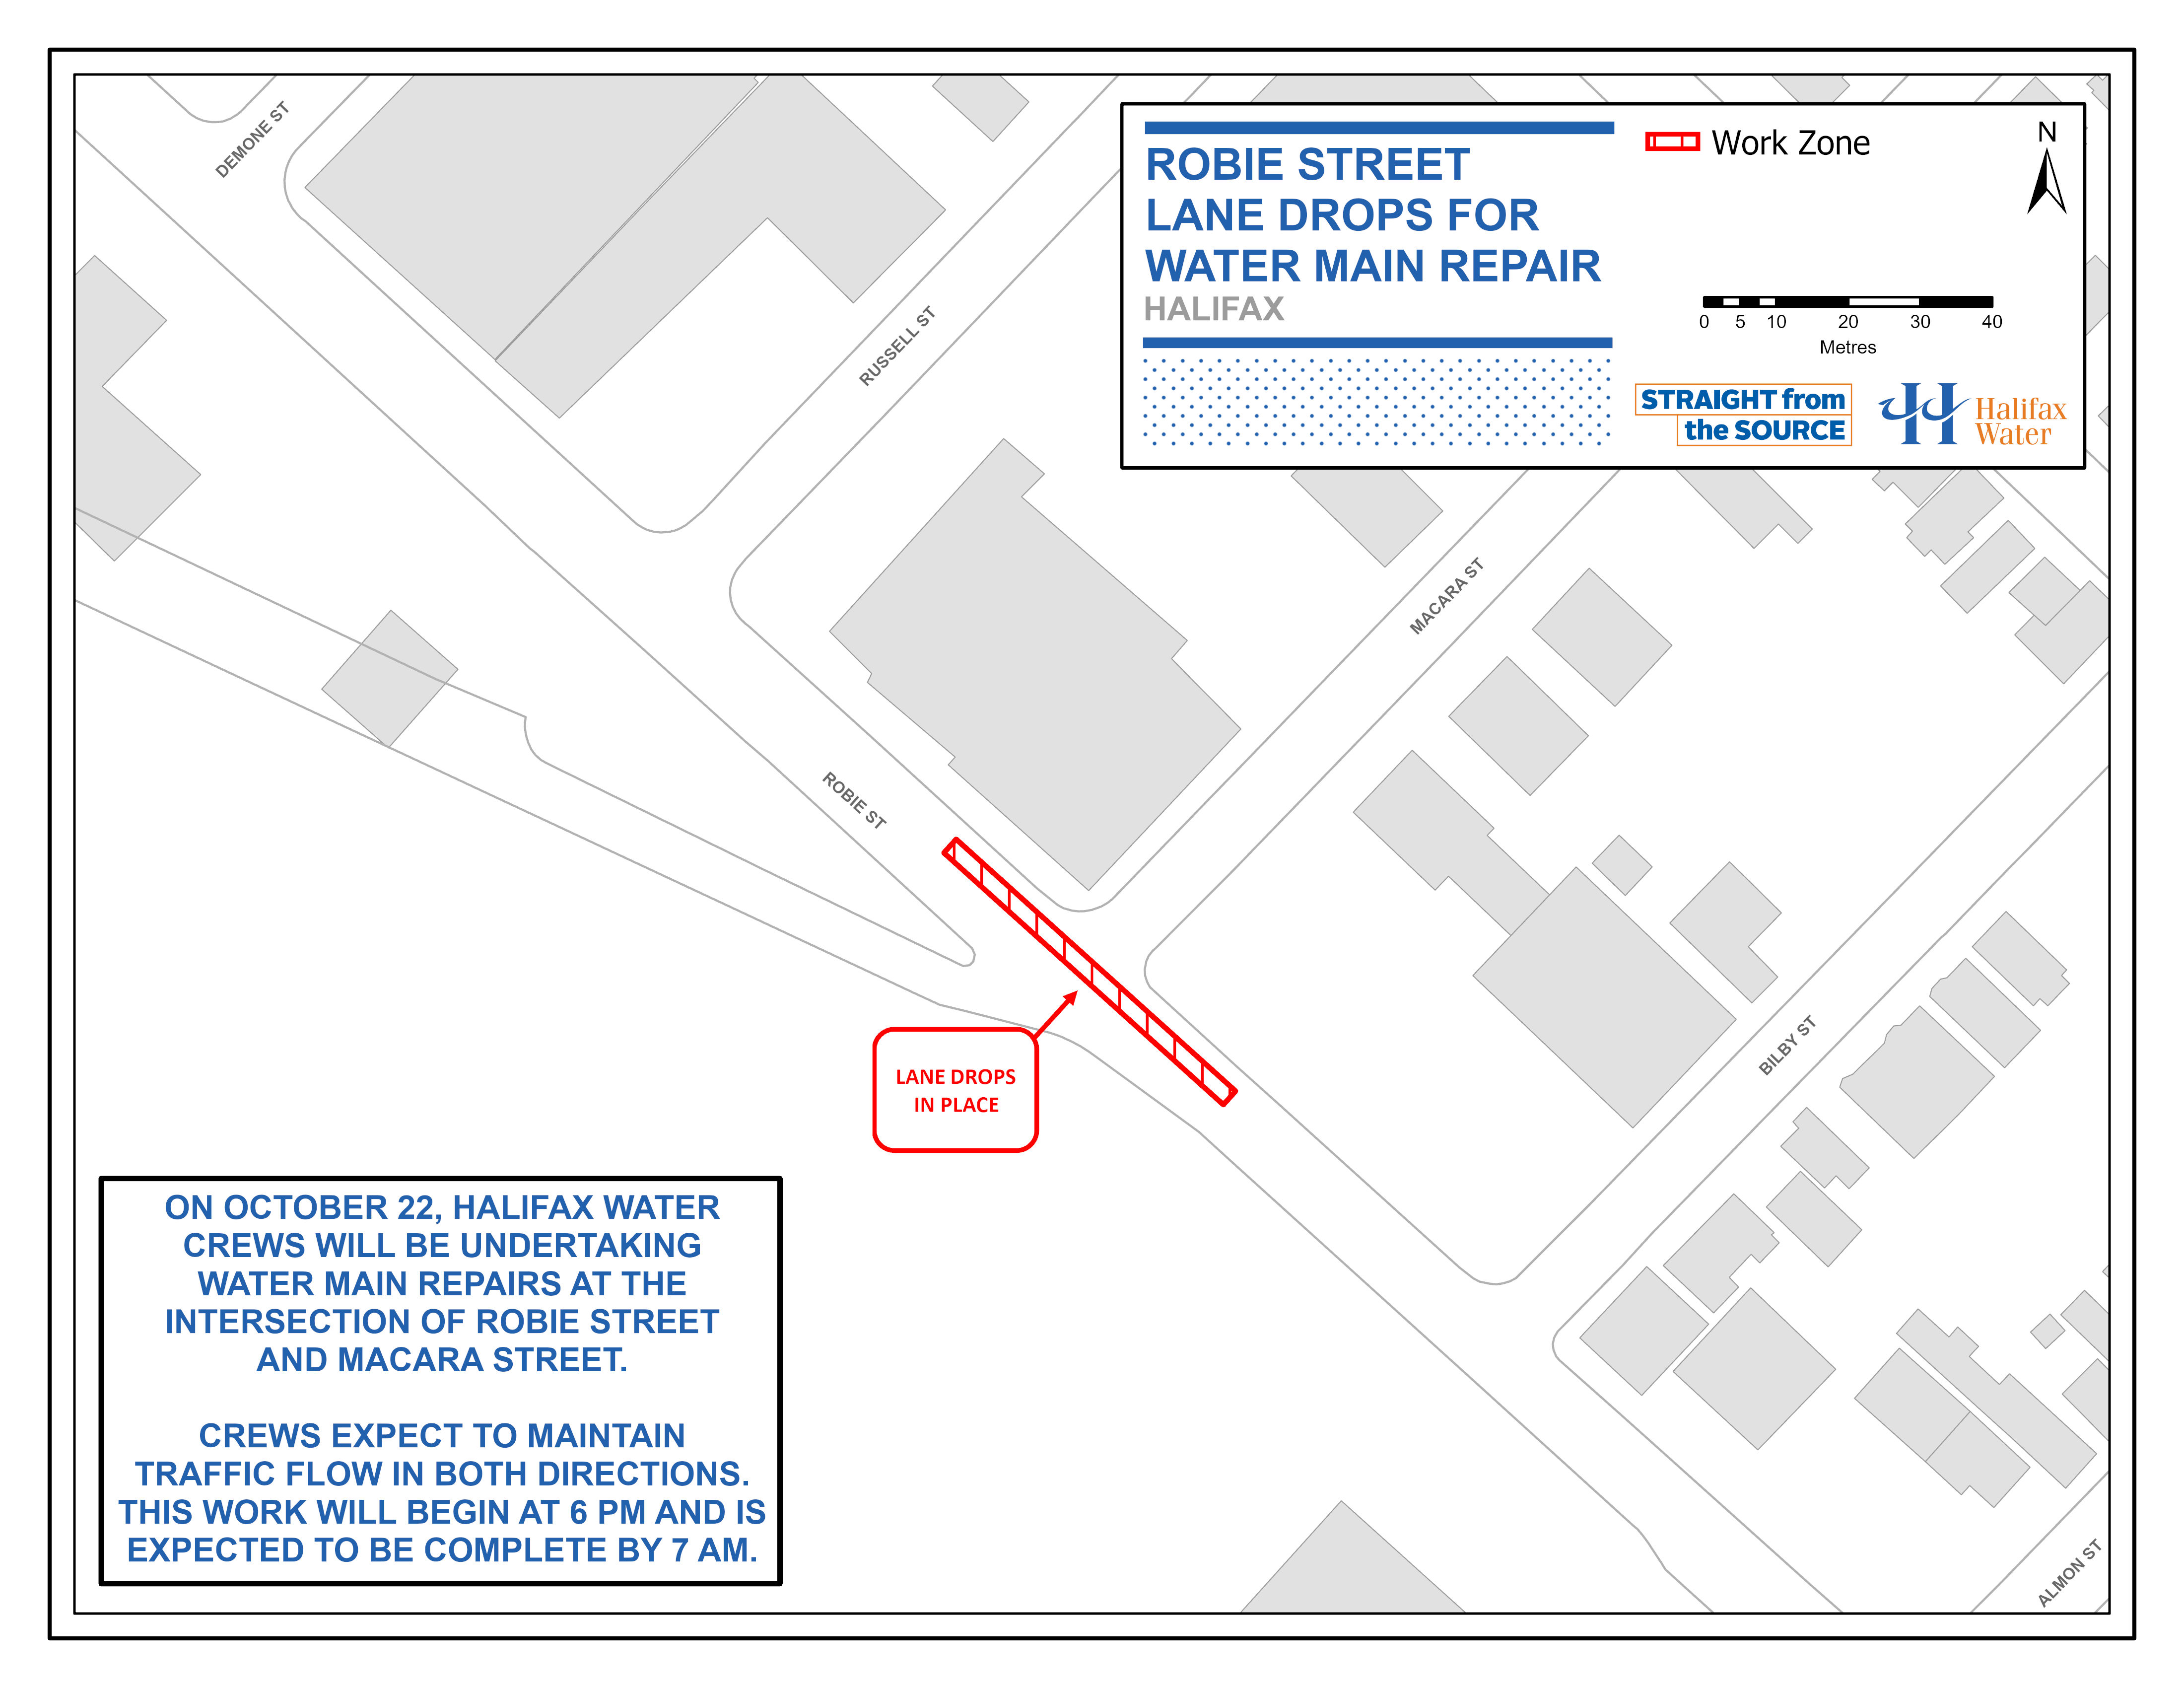 Halifax Water PSA Map - Robie Street - Lane Drops for Water Main Repair